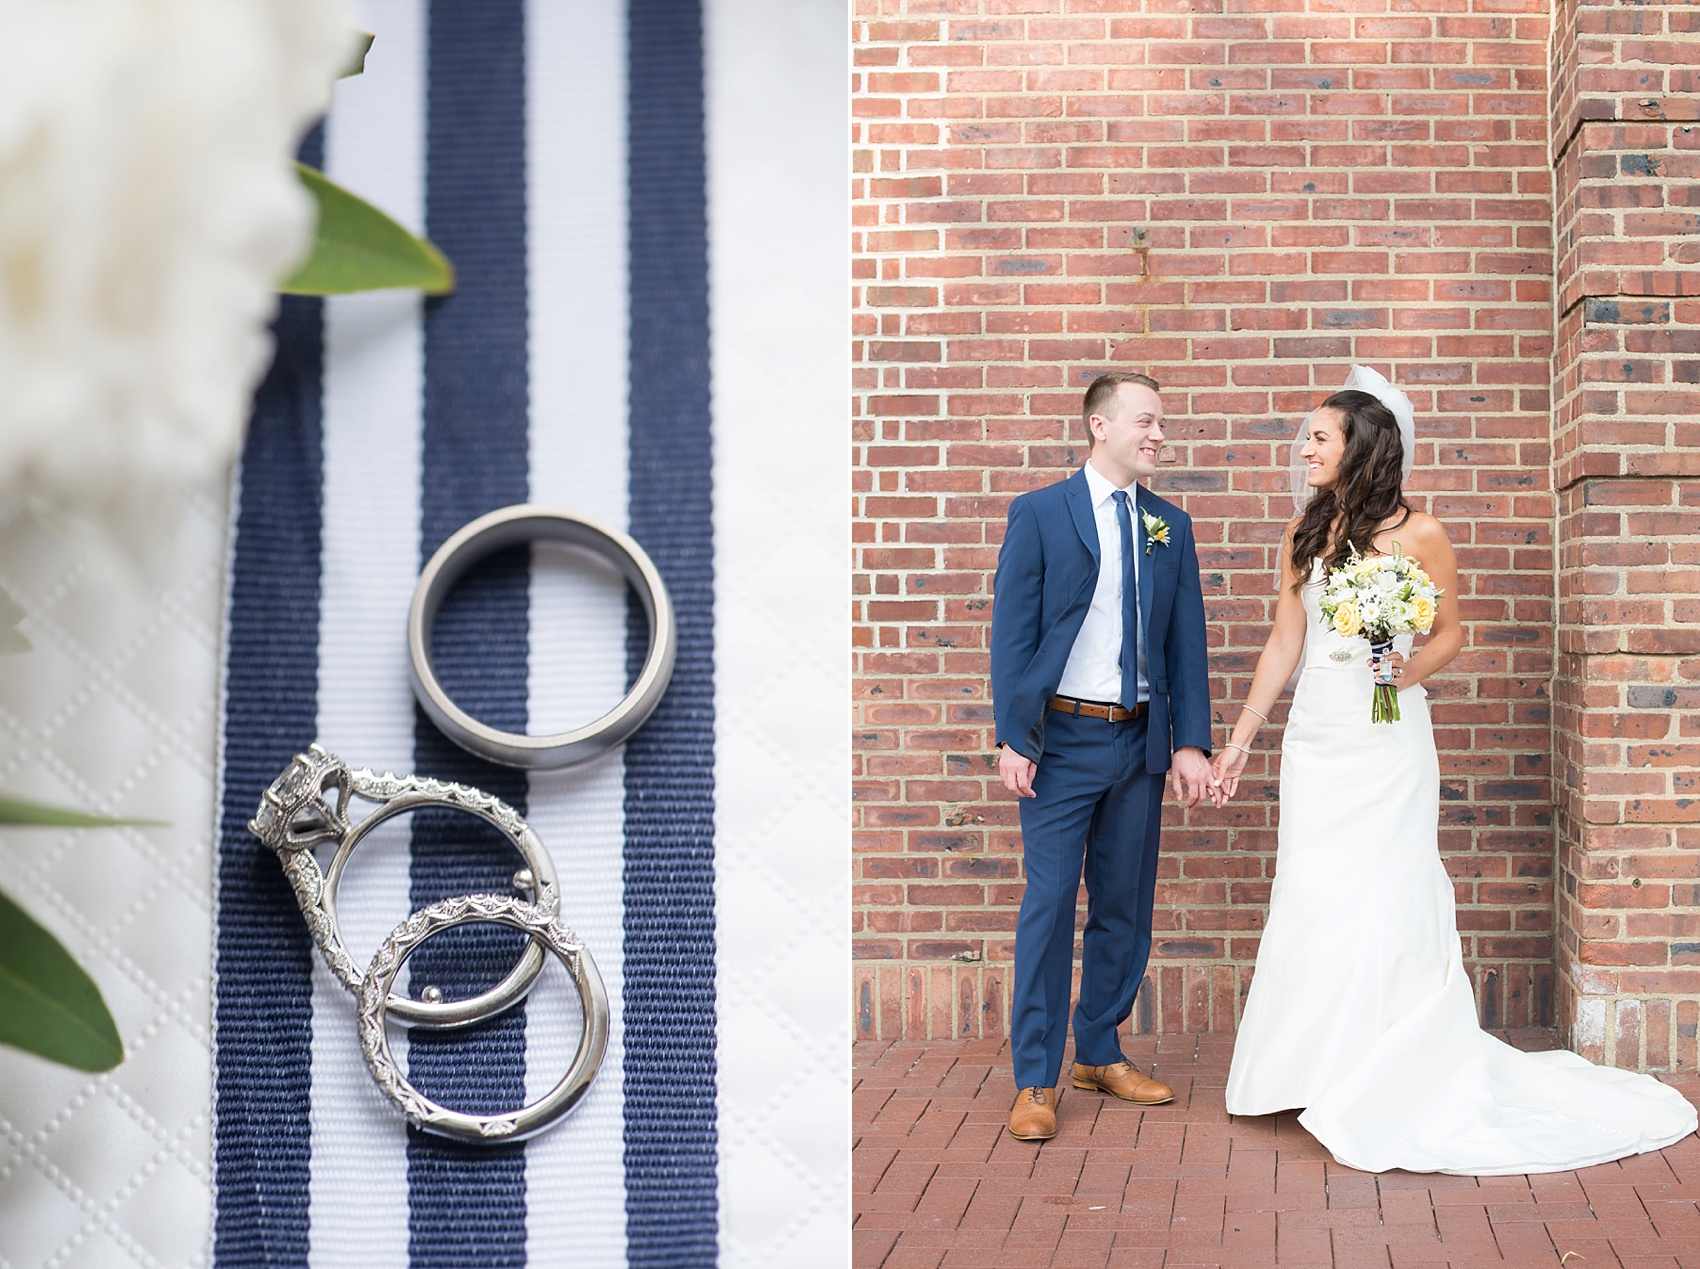 Bride and groom in New Jersey for their nautical wedding at the Molly Pitcher Inn. Photo by Mikkel Paige Photography. Wedding rings by Tacori.